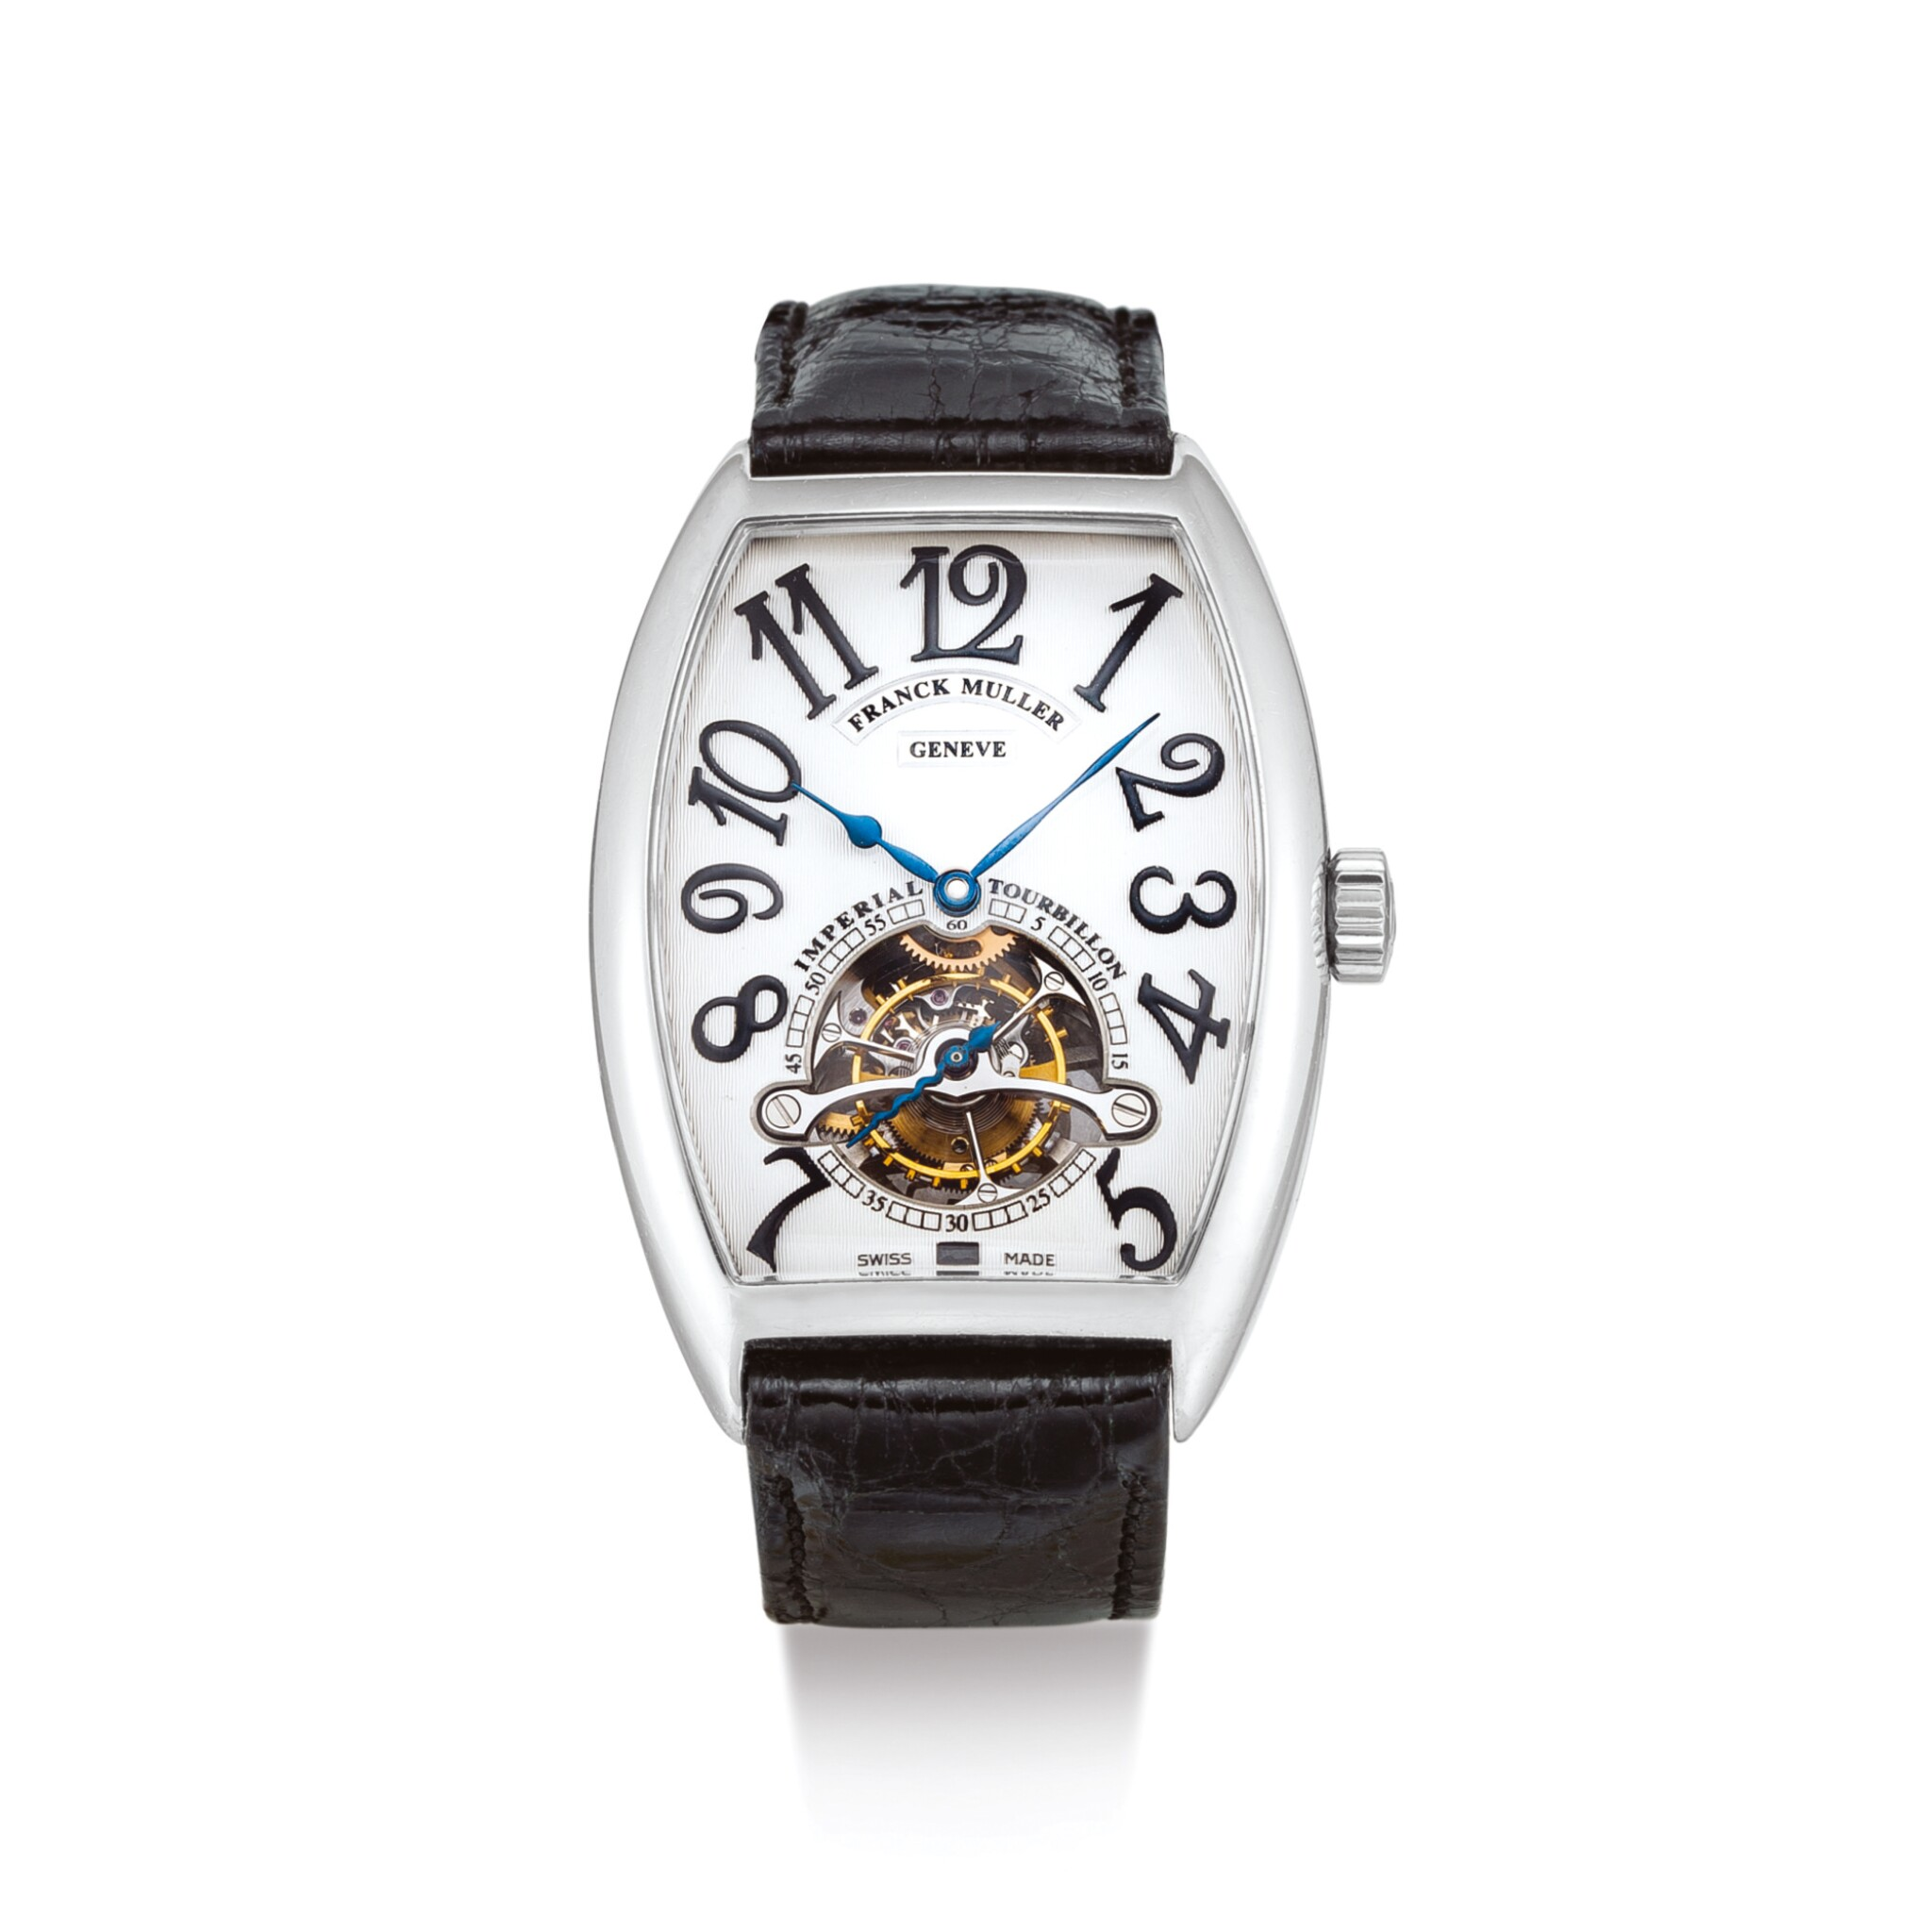 """View full screen - View 1 of Lot 2010. FRANCK MULLER     IMPERIAL TOURBILLON, REFERENCE 5850T  A PLATINUM TOURBILLON WRISTWATCH, CIRCA 2008   """"Imperial Tourbillon 型號5850T 鉑金陀飛輪腕錶,機芯編號62157,錶殼編號21,約2008年製""""."""